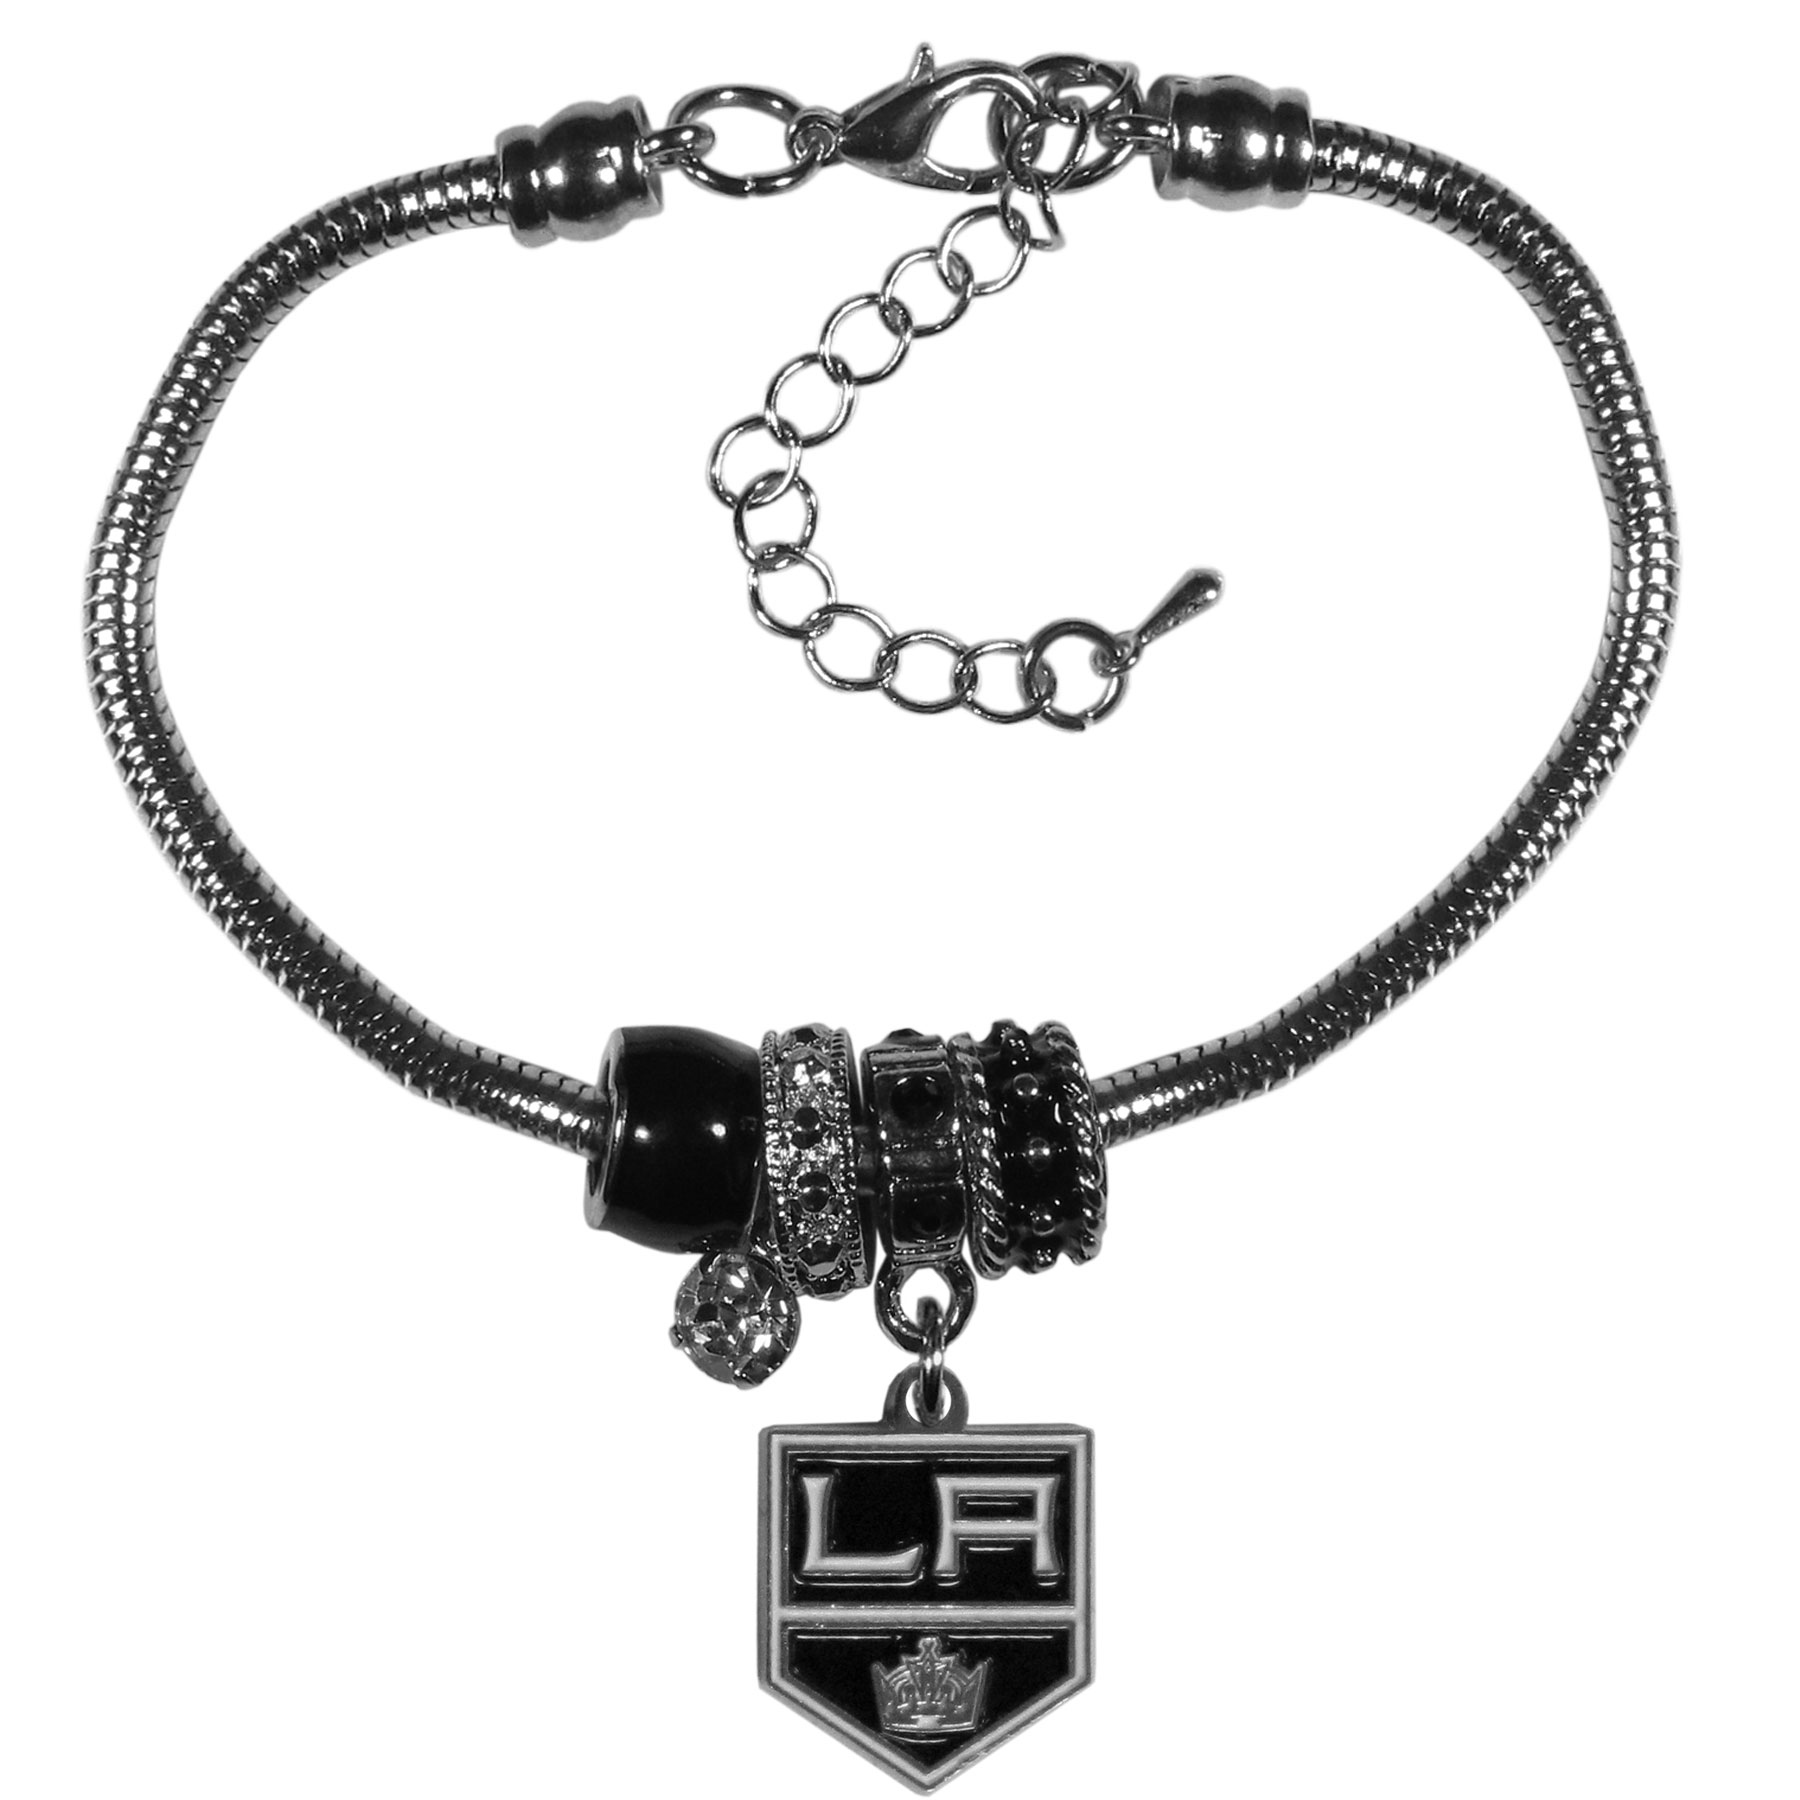 Los Angeles Kings® Euro Bead Bracelet - We have combined the wildly popular Euro style beads with your favorite team to create our  Los Angeles Kings® bead bracelet. The 7.5 inch snake chain with 2 inch extender features 4 Euro beads with enameled team colors and rhinestone accents with a high polish, nickel free charm and rhinestone charm. Perfect way to show off your team pride.